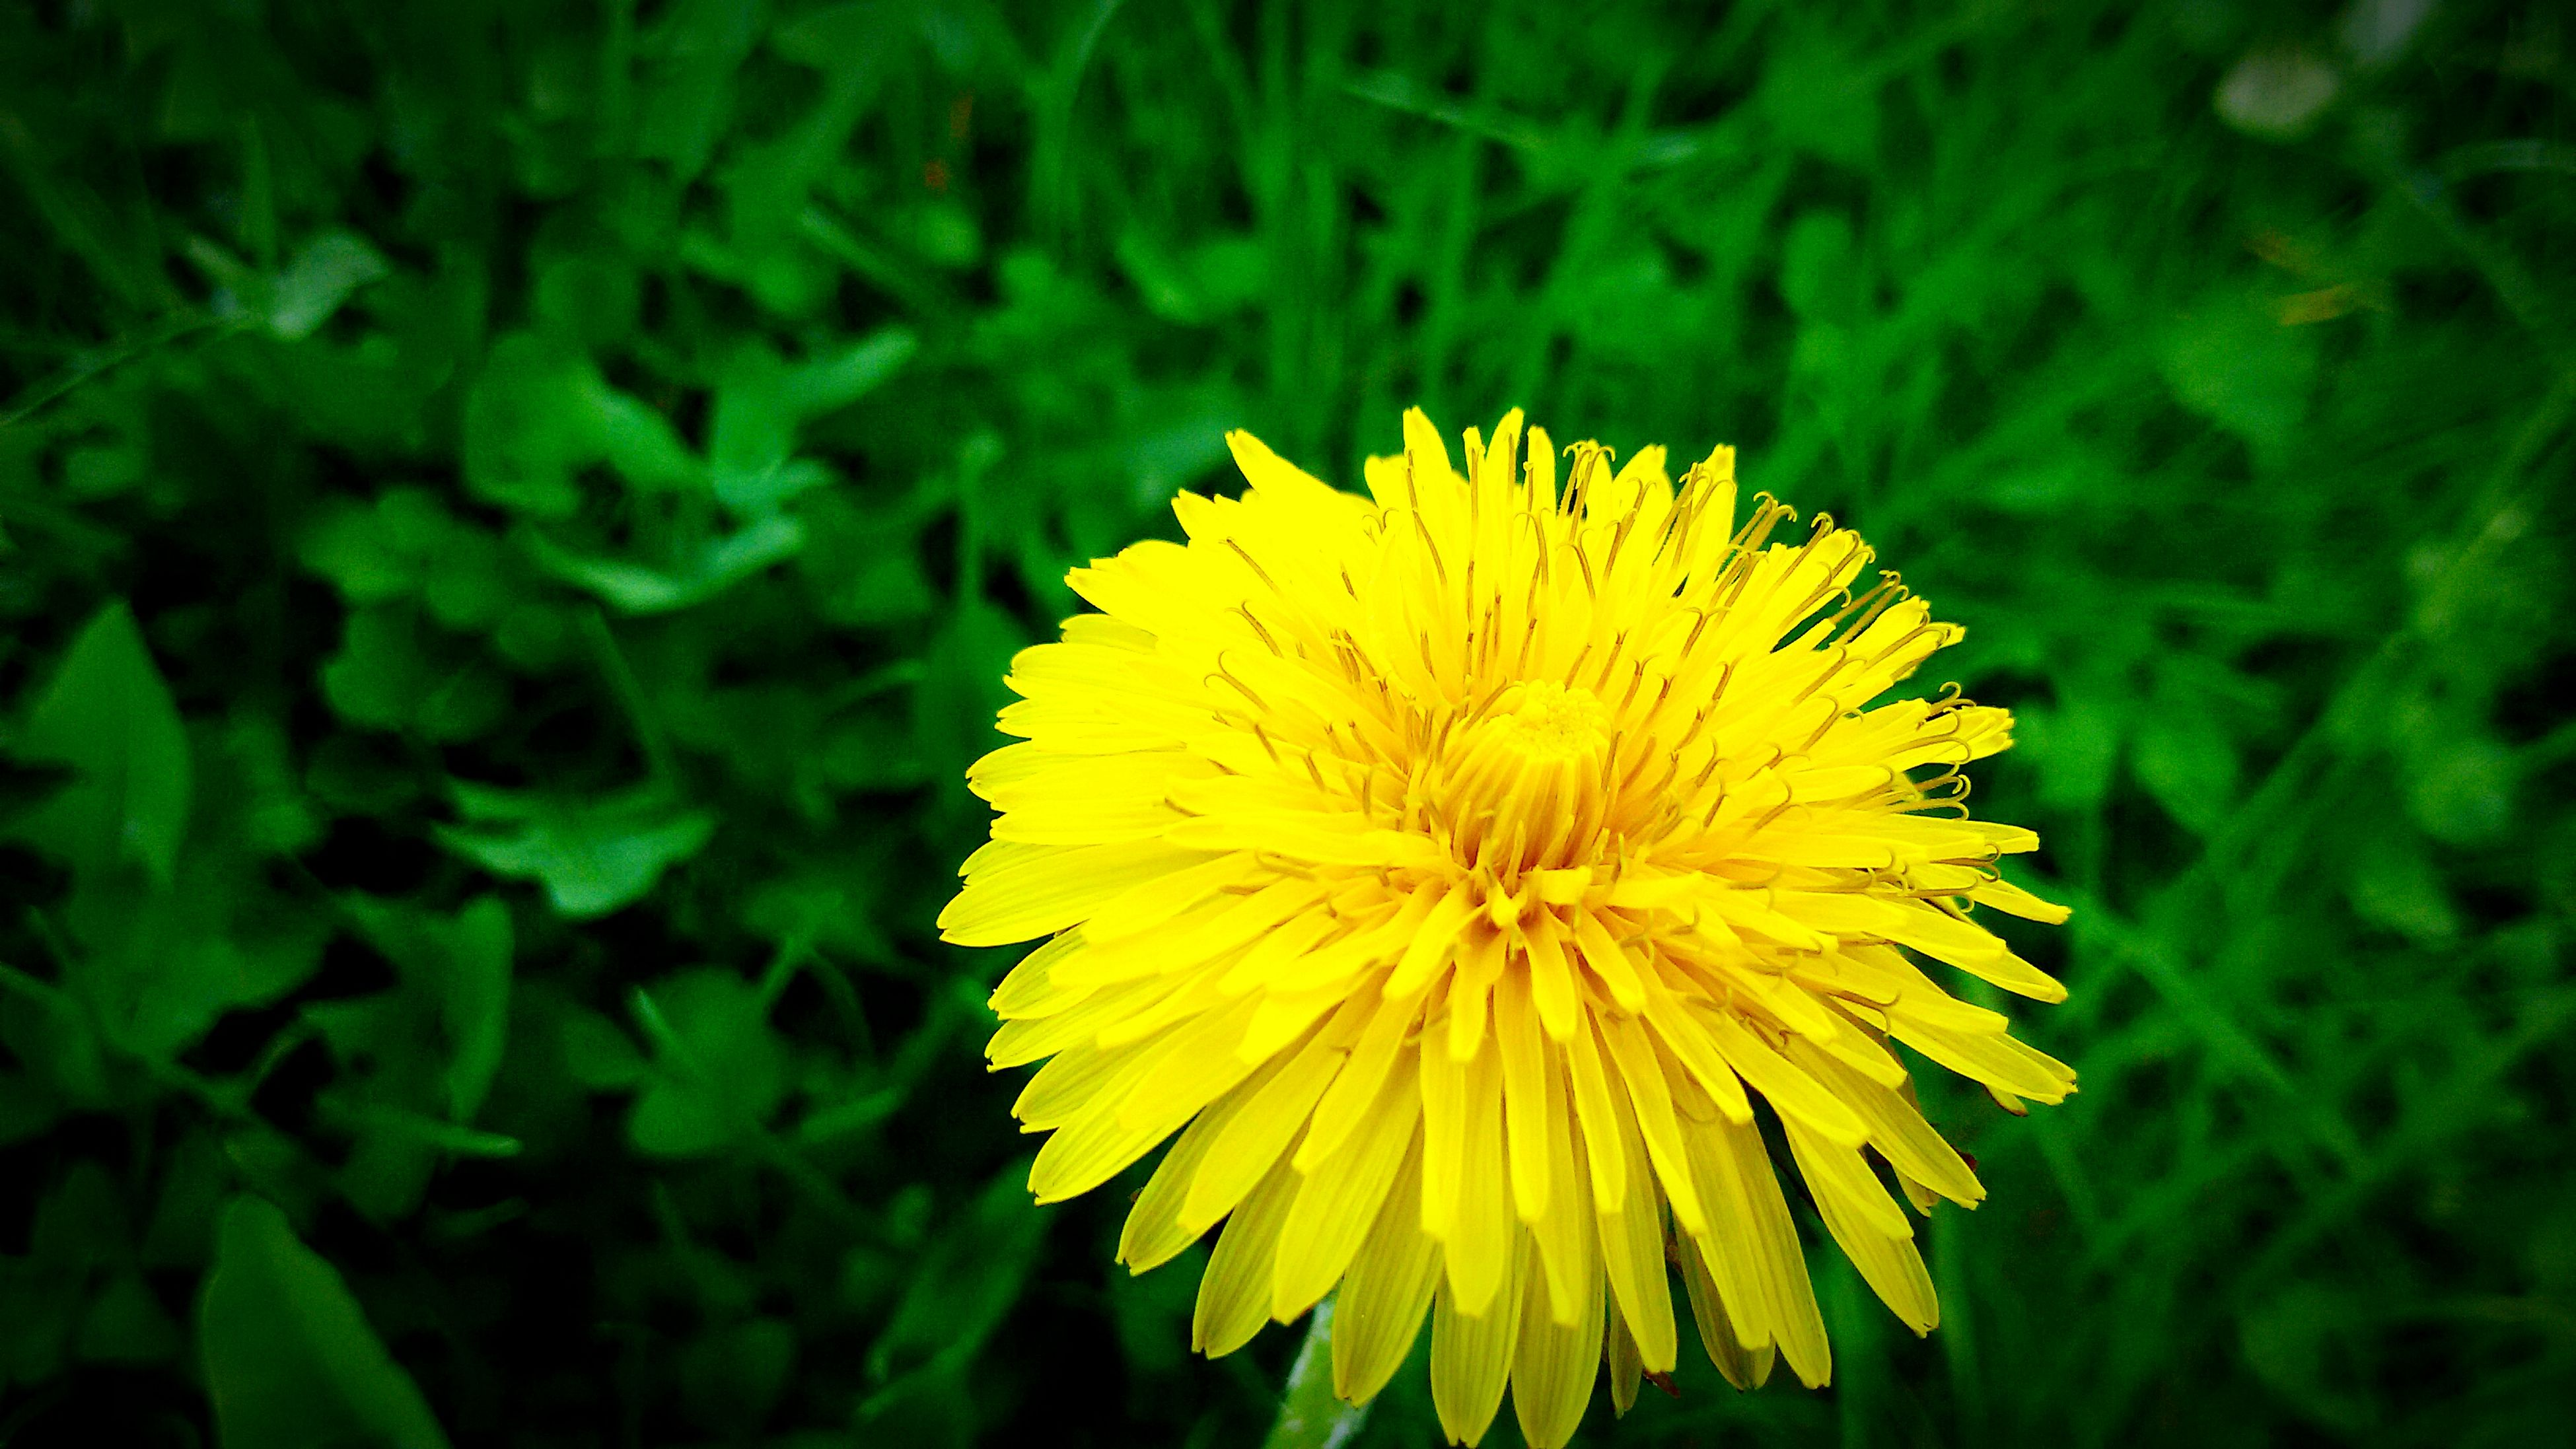 flower, yellow, freshness, flower head, fragility, growth, petal, single flower, beauty in nature, close-up, nature, plant, pollen, blooming, focus on foreground, dandelion, field, in bloom, outdoors, day